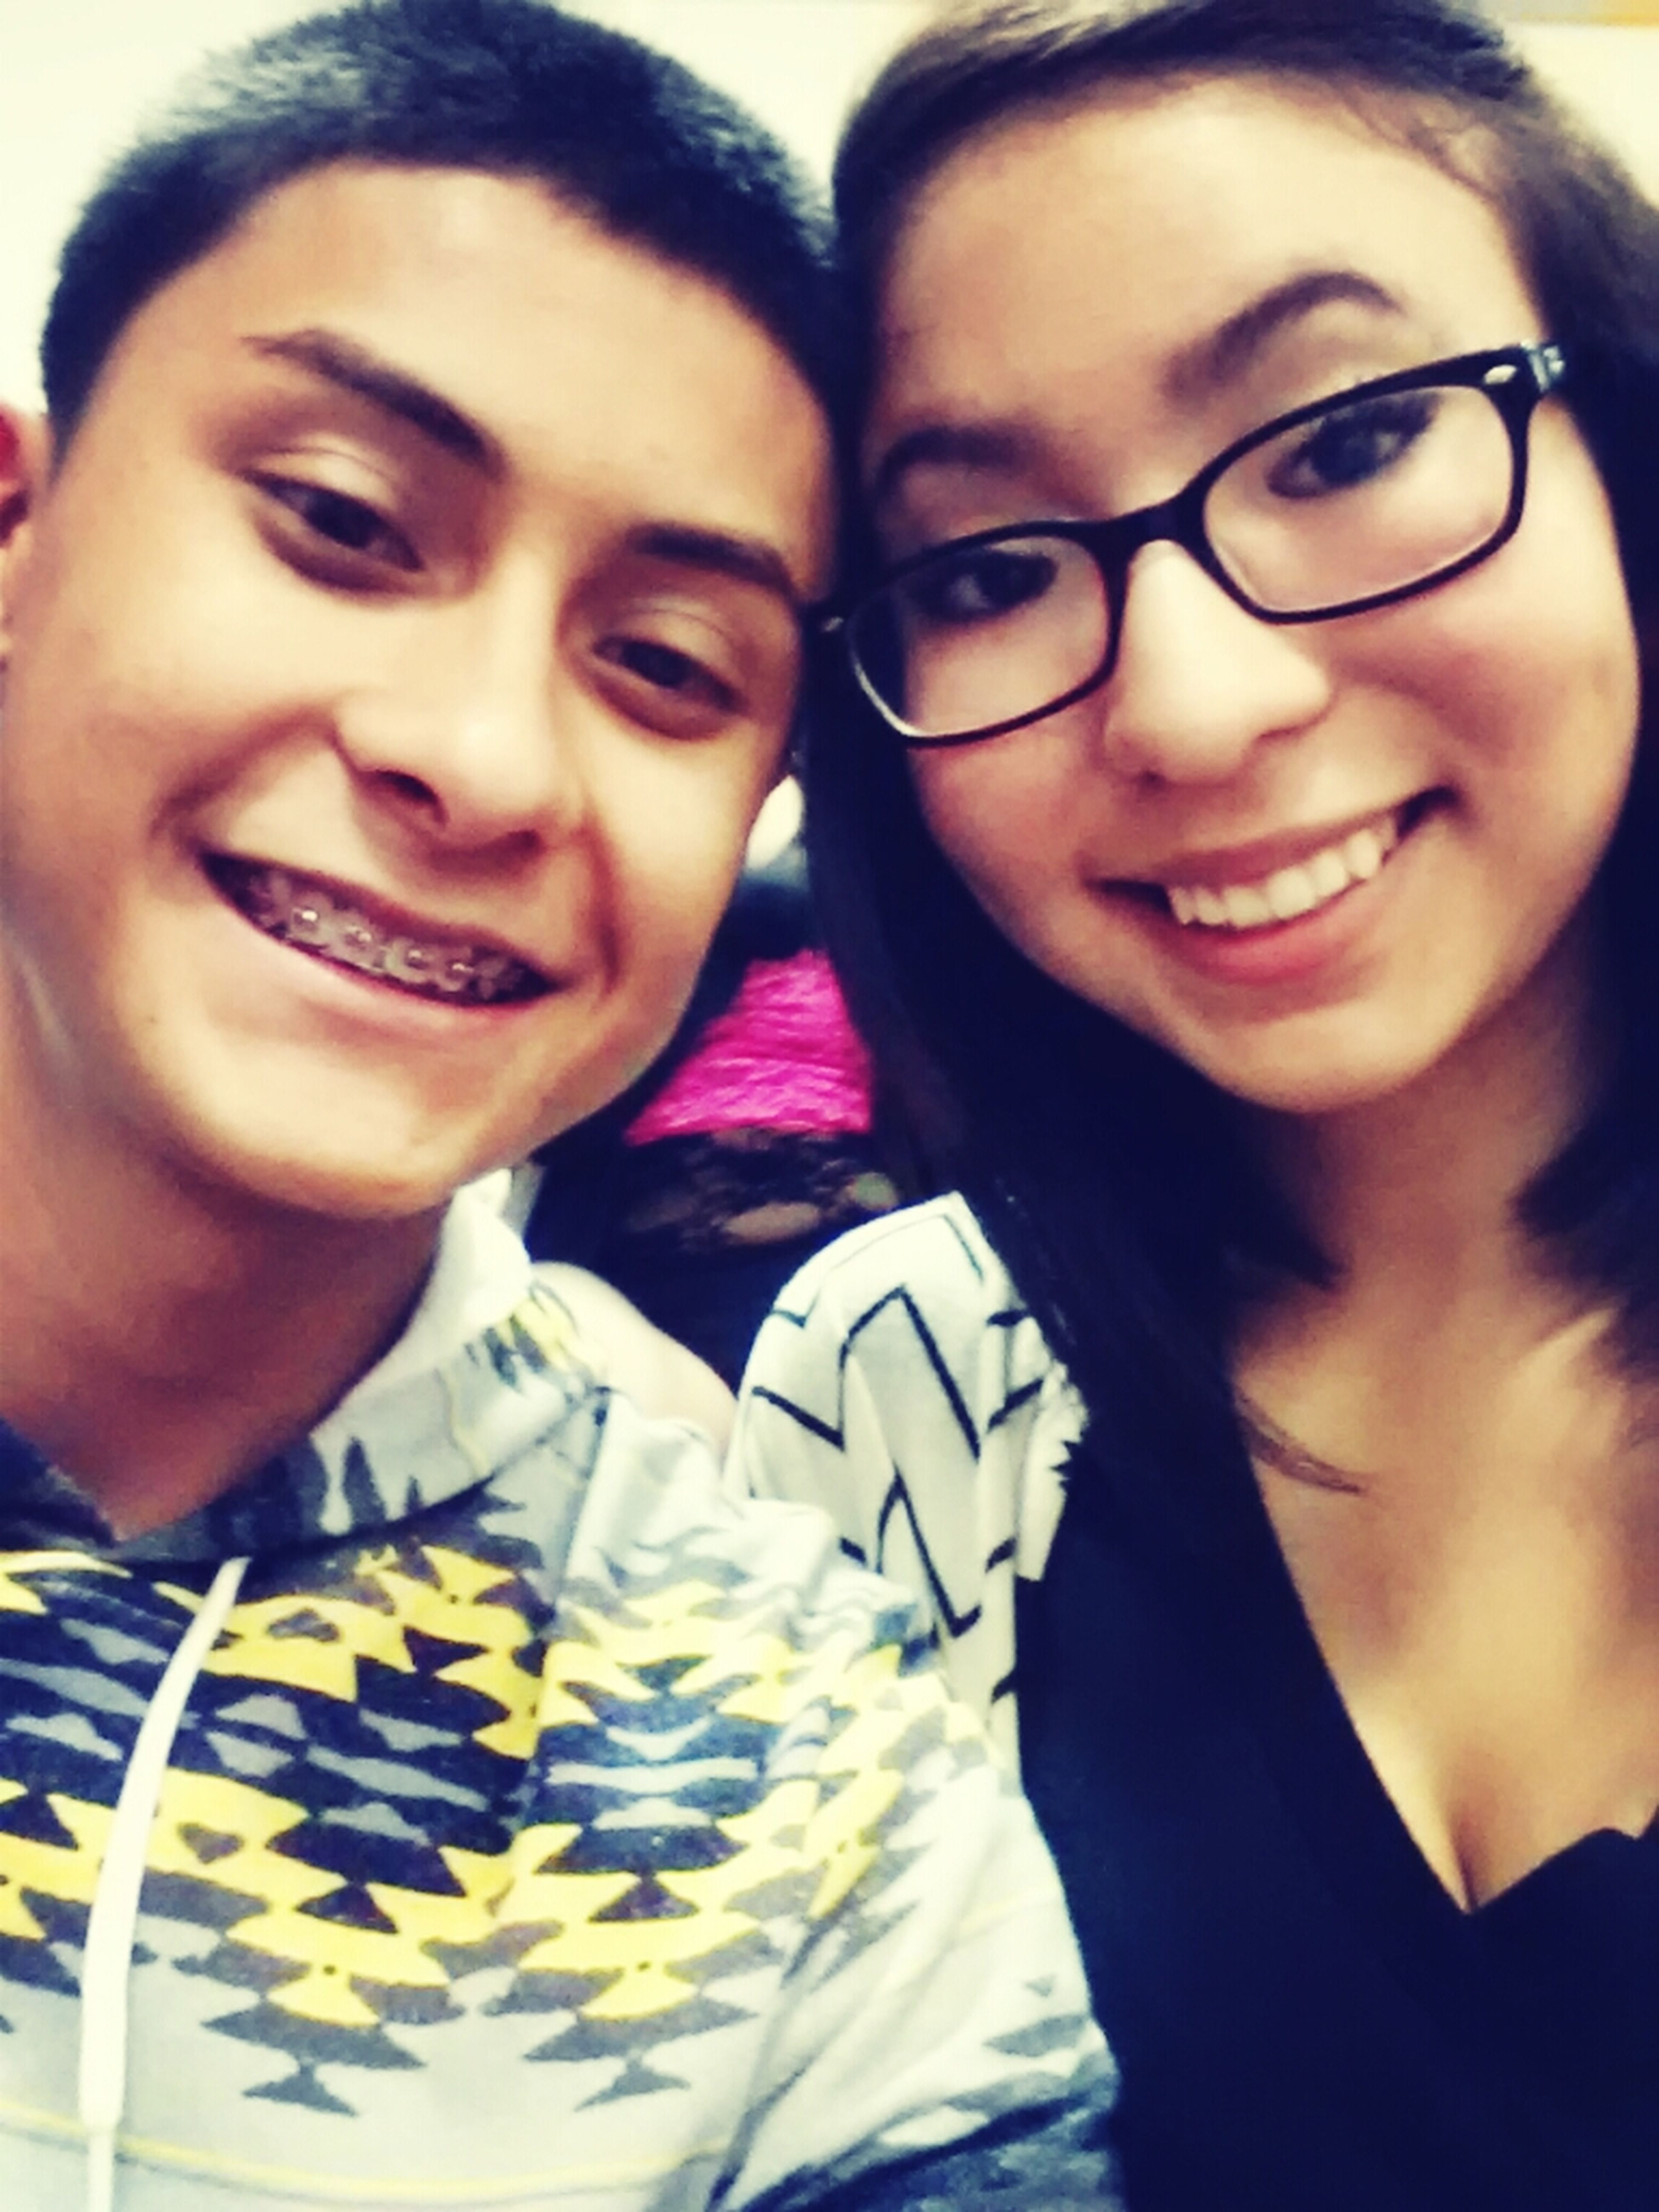 Yesterday With This Amazing Boy ♡